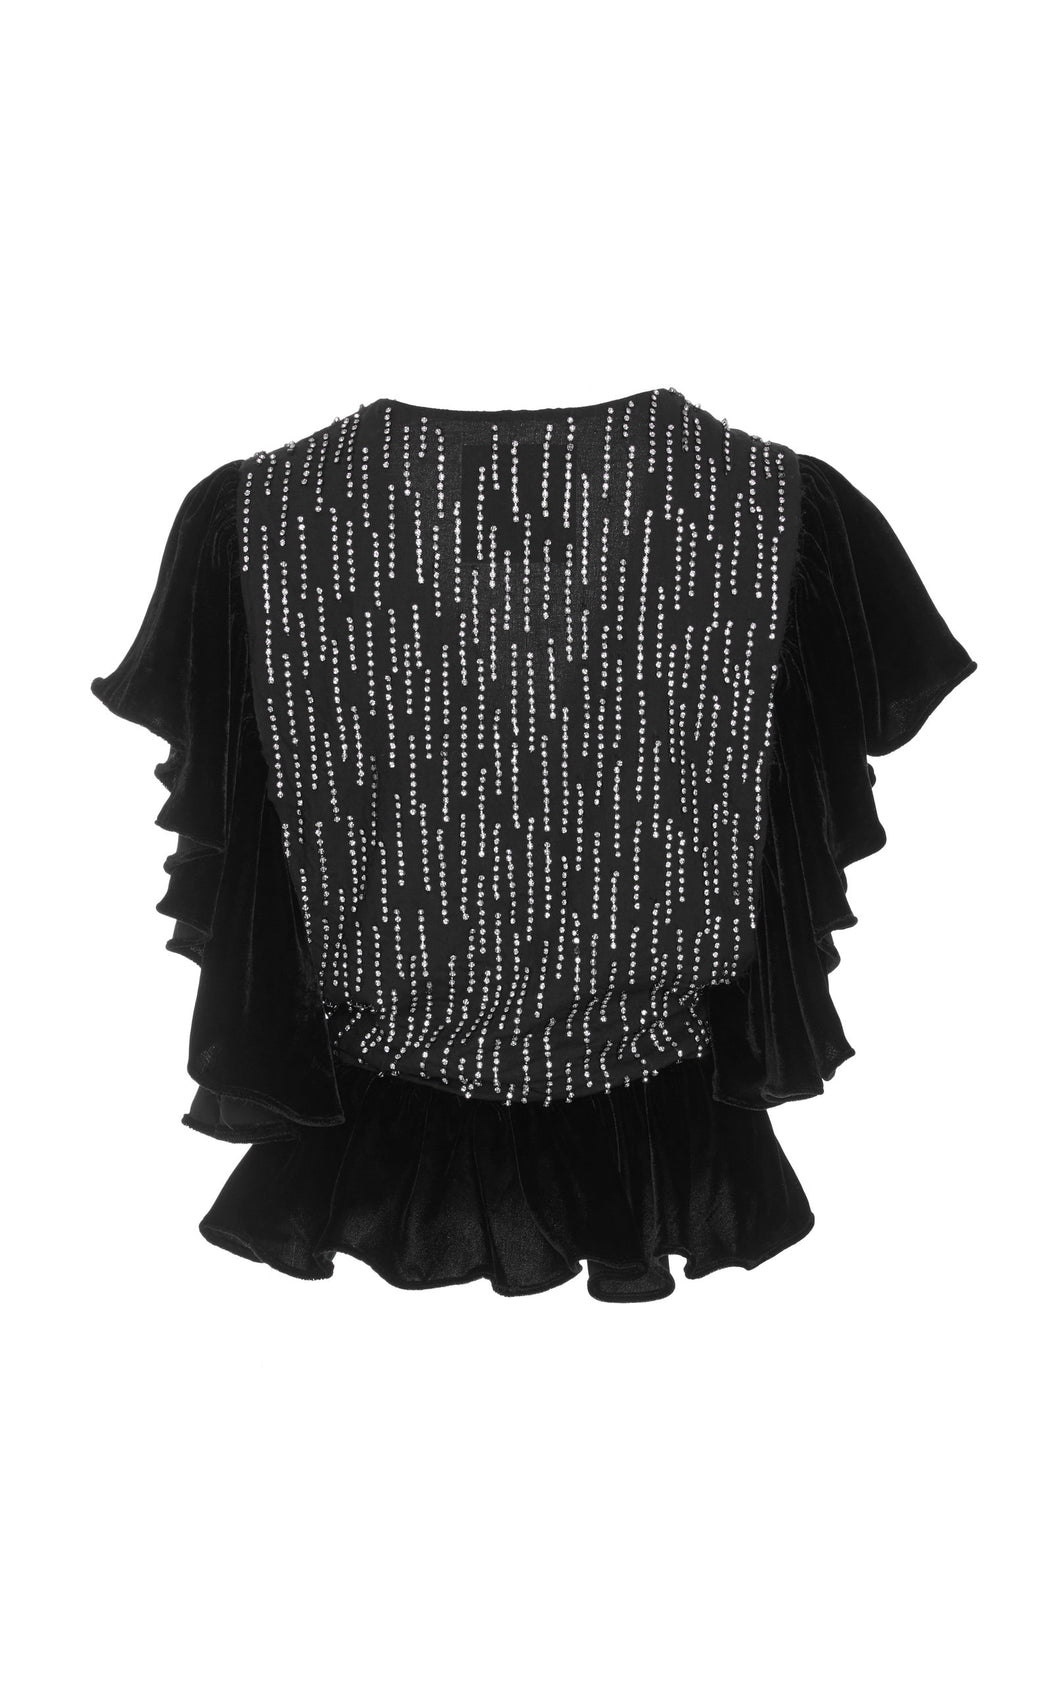 Upside Down Crystal Embellished Velvet Top